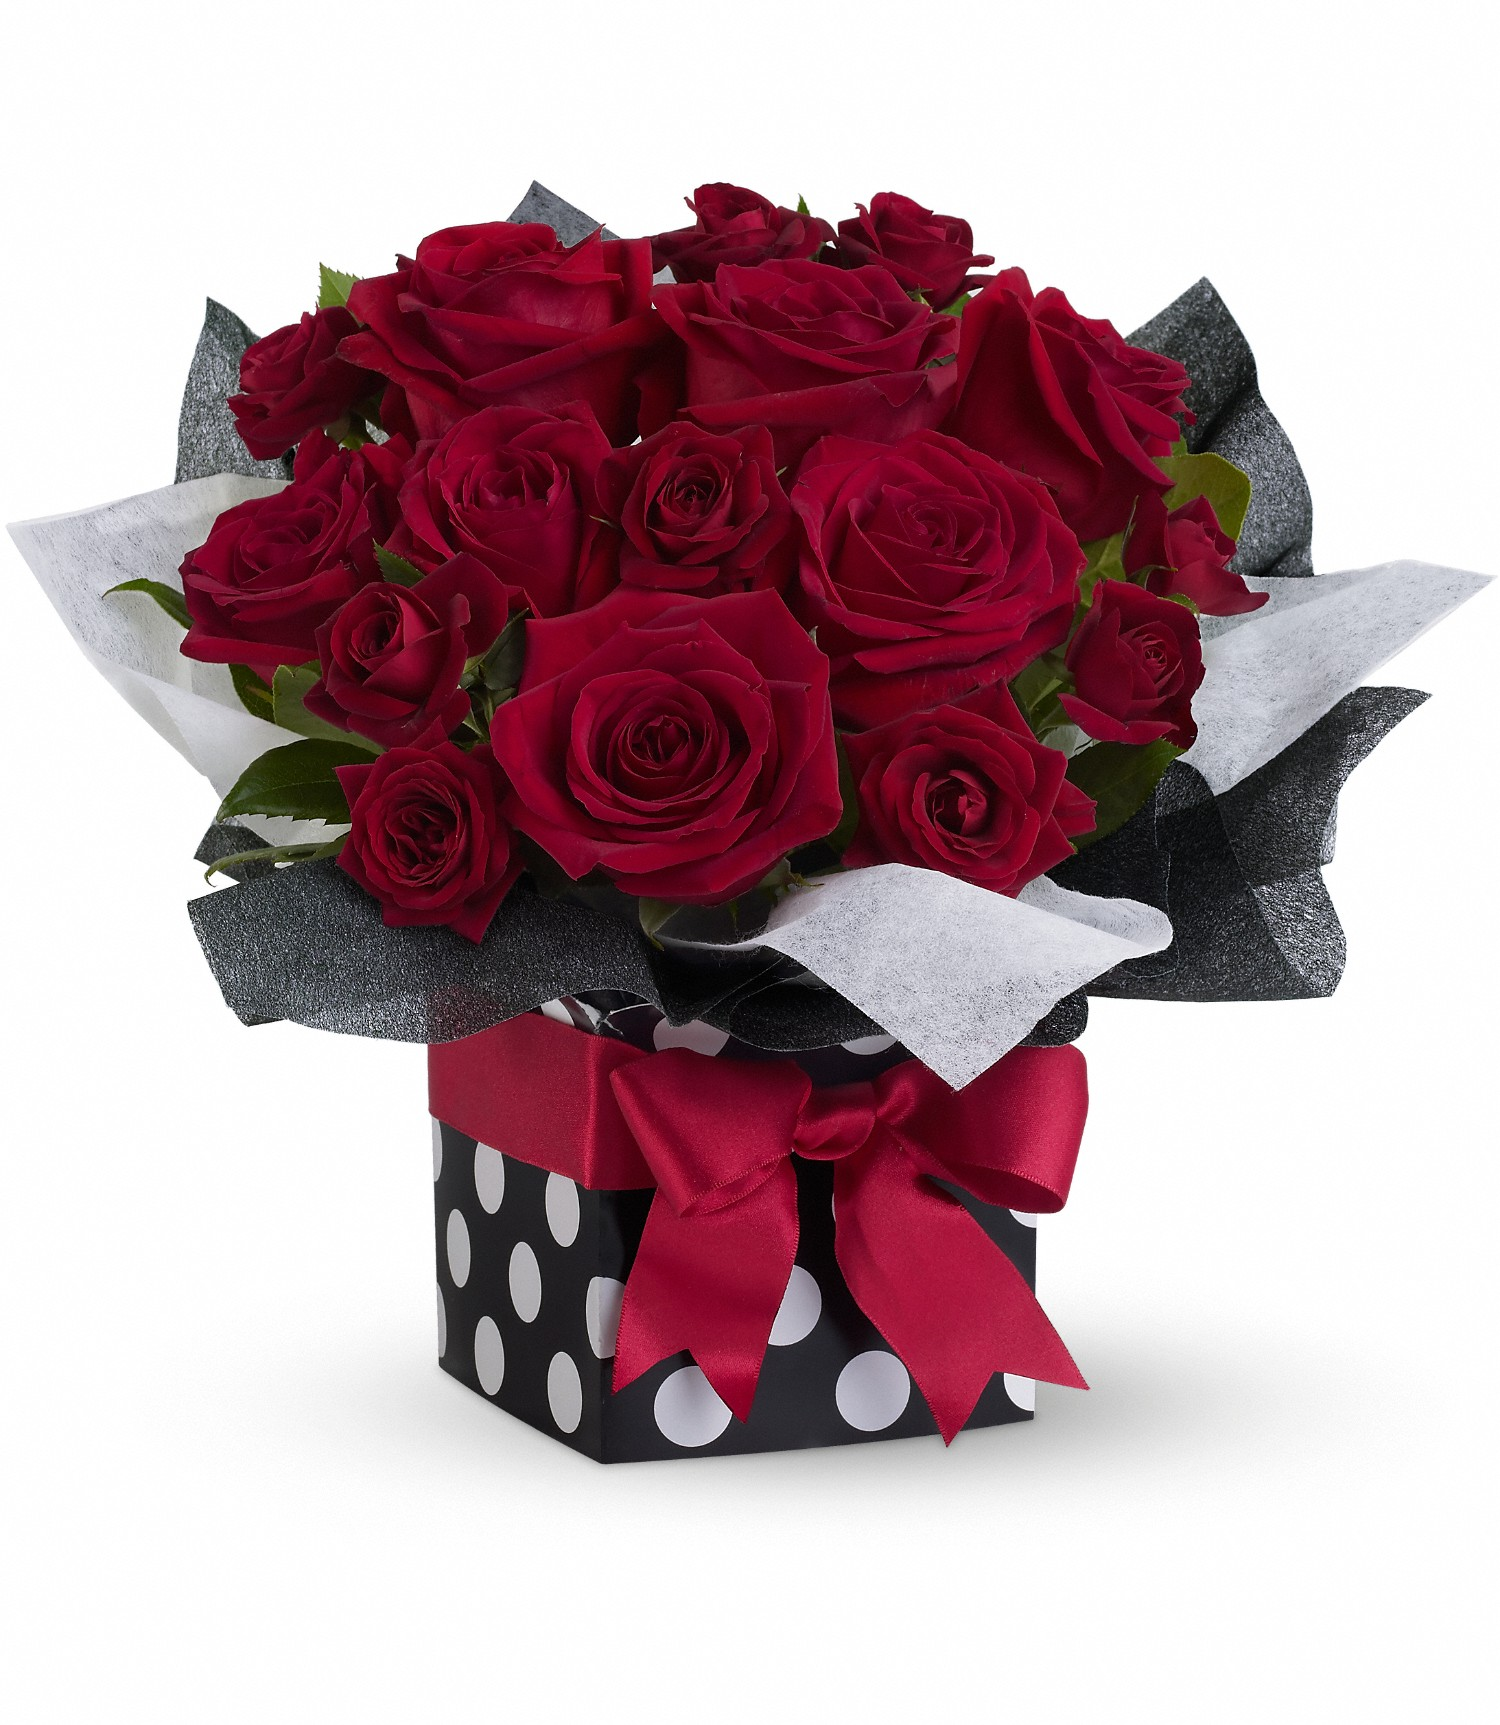 polka dots roses gift box in houston - Garden Oaks Funeral Home